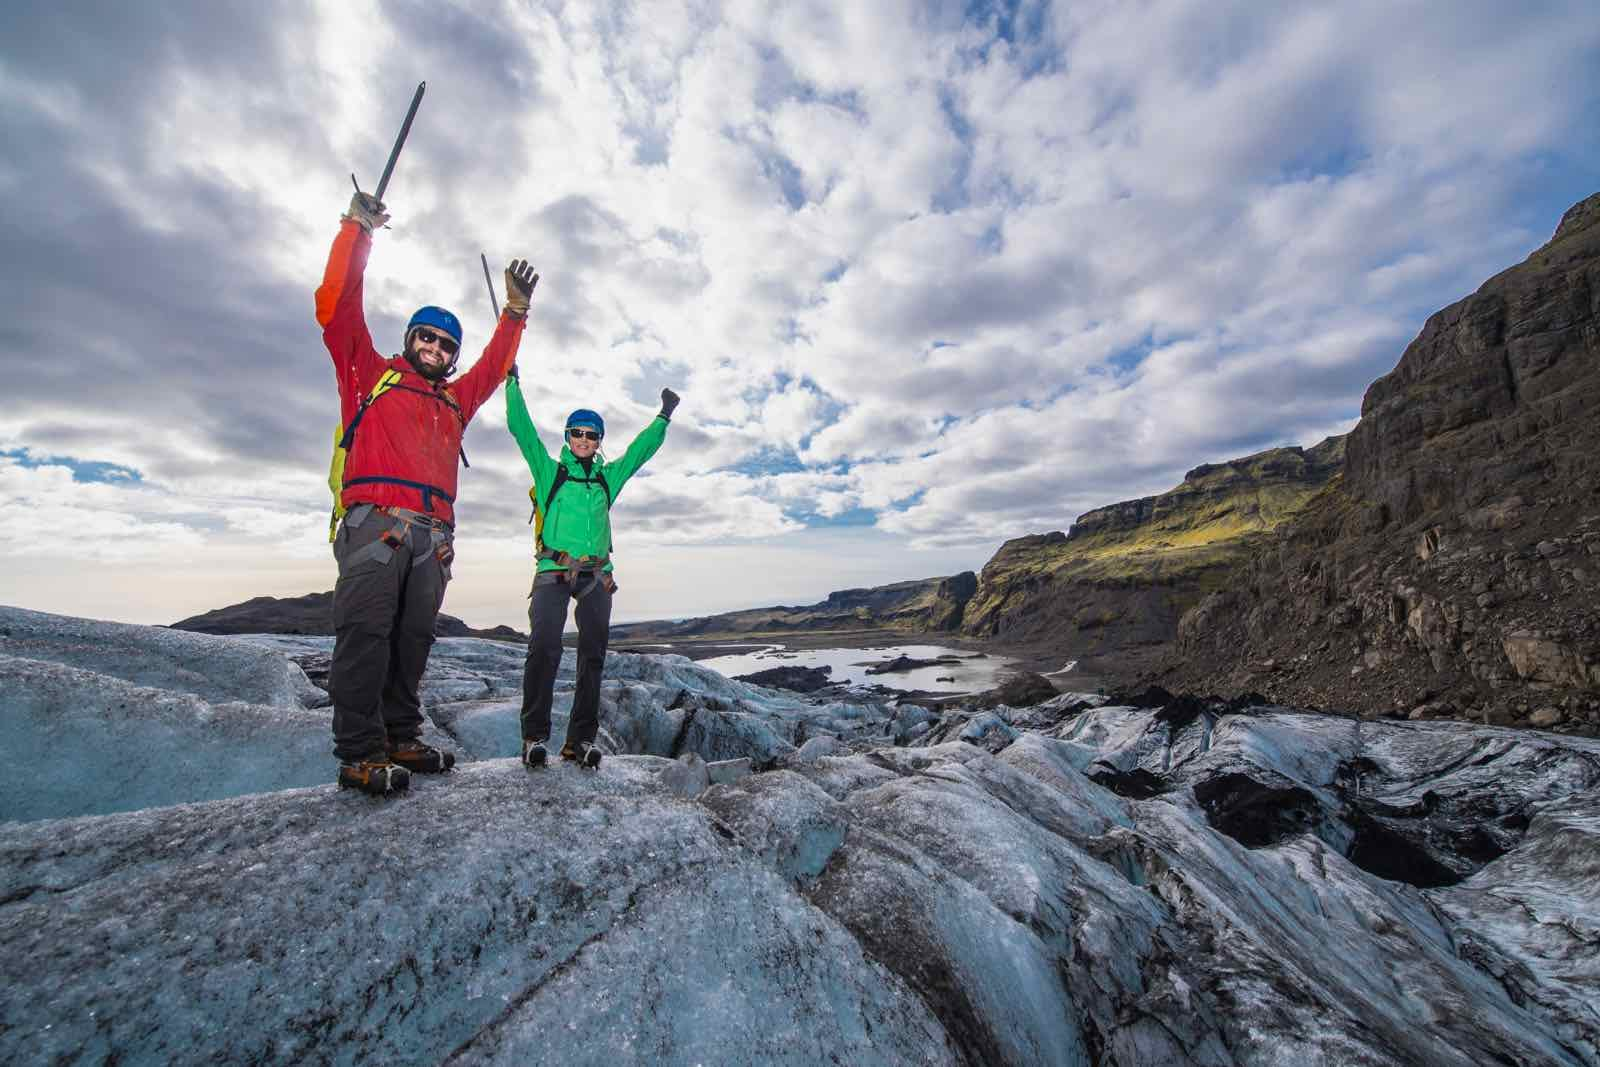 Solheimajokull Glacier Adventure | Boots & Rainwear Included